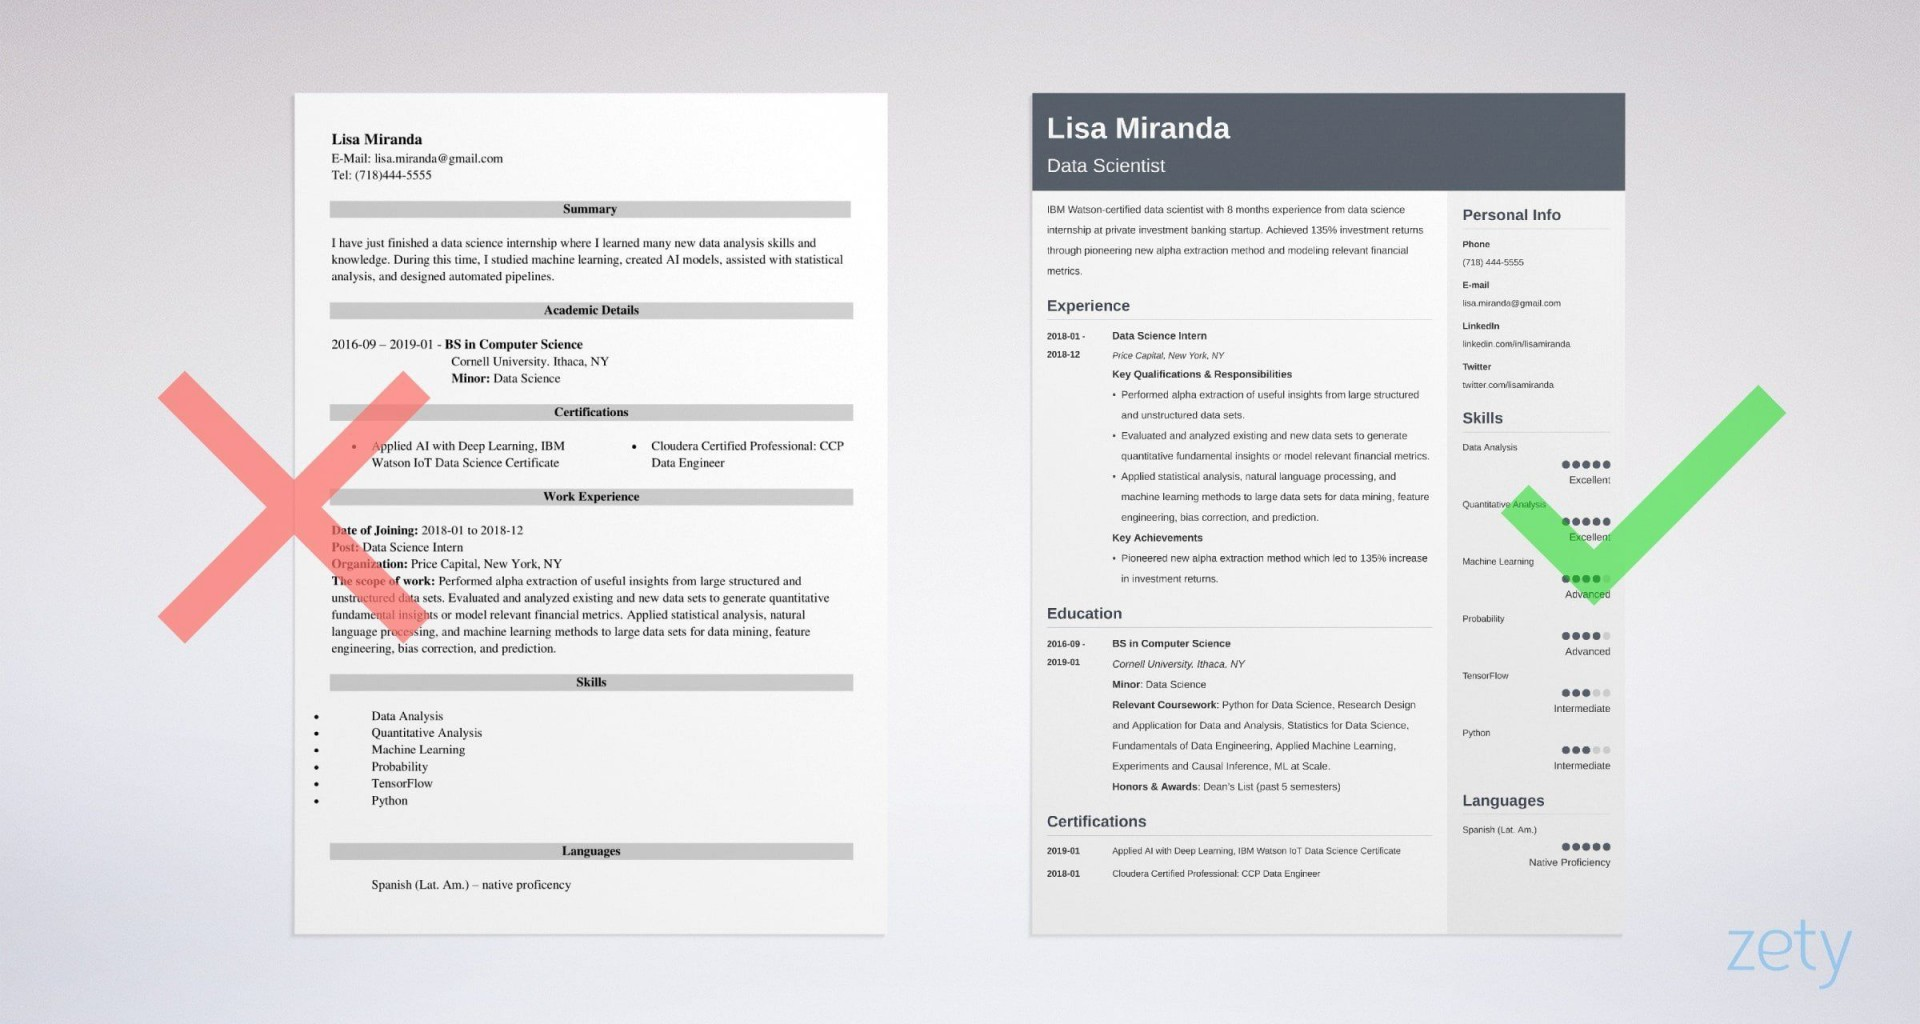 009 Fearsome Recent College Graduate Resume Template Sample  Word1920